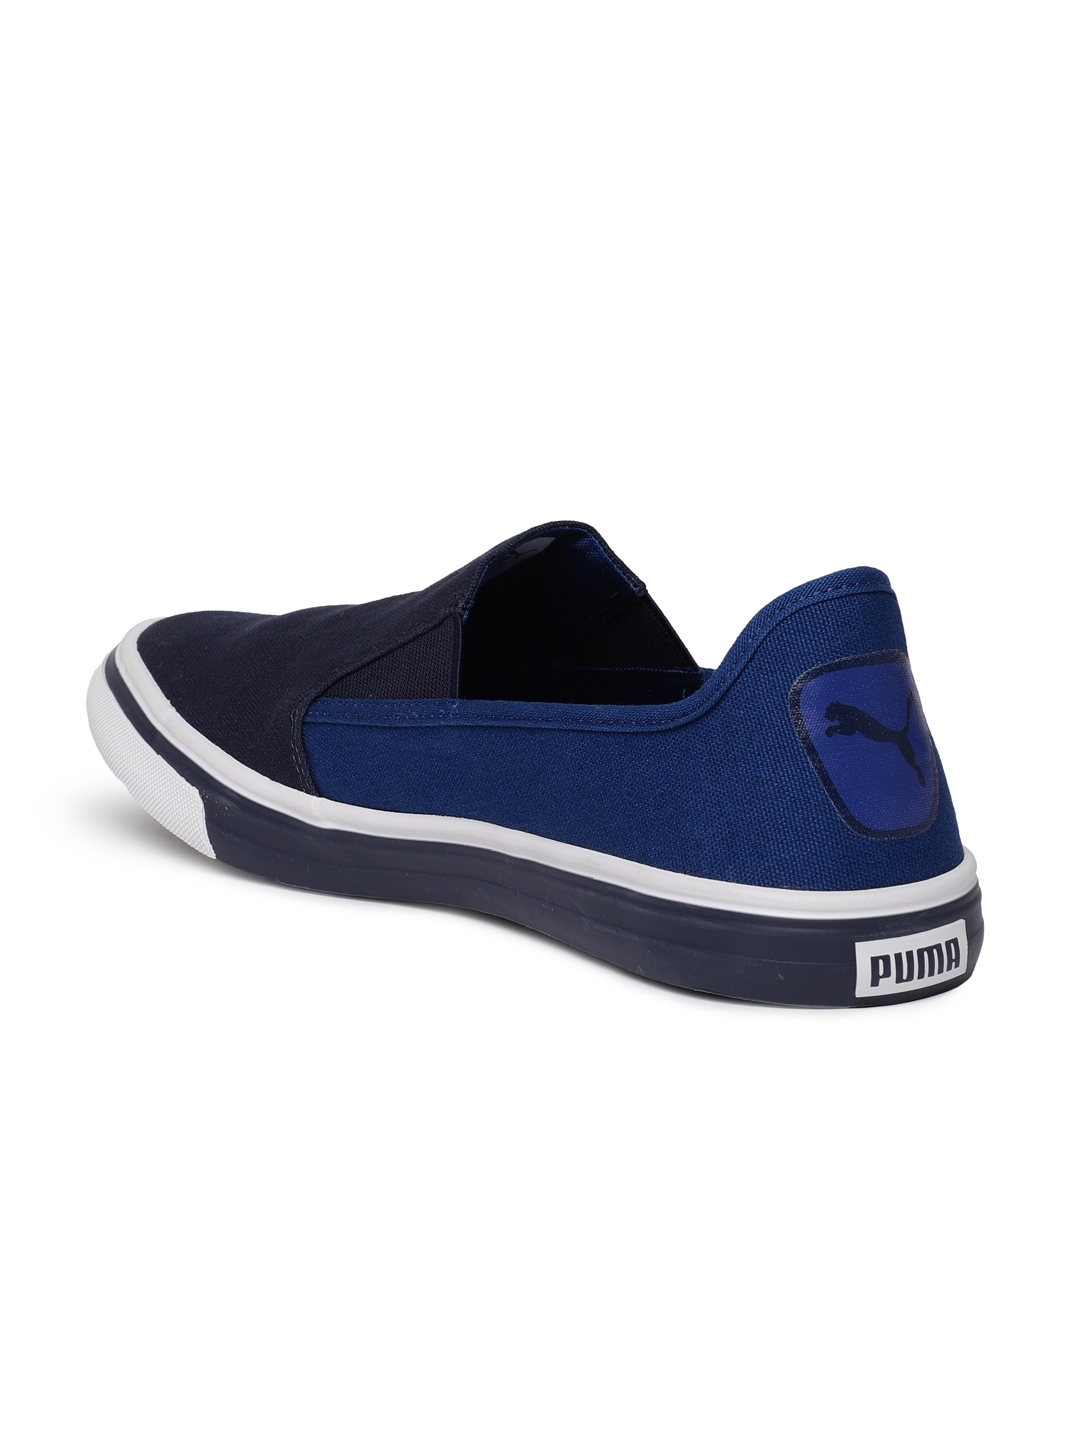 f39e76b1c63 Buy Puma Men Navy Apollo IDP Slip On Sneakers - Casual Shoes for Men ...